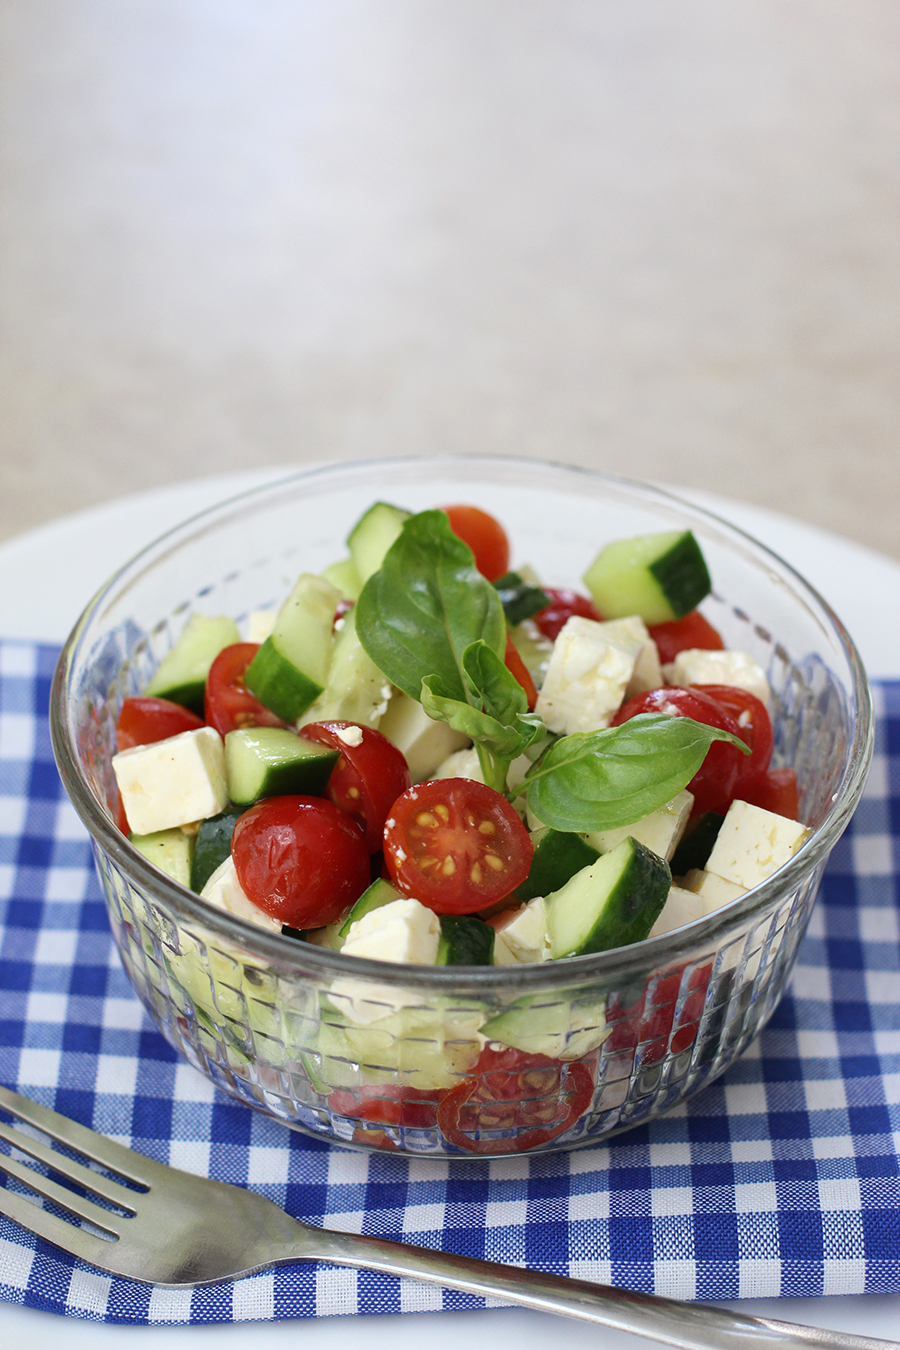 Use garden cucumbers and cherry tomatoes for a juicy greek salad!